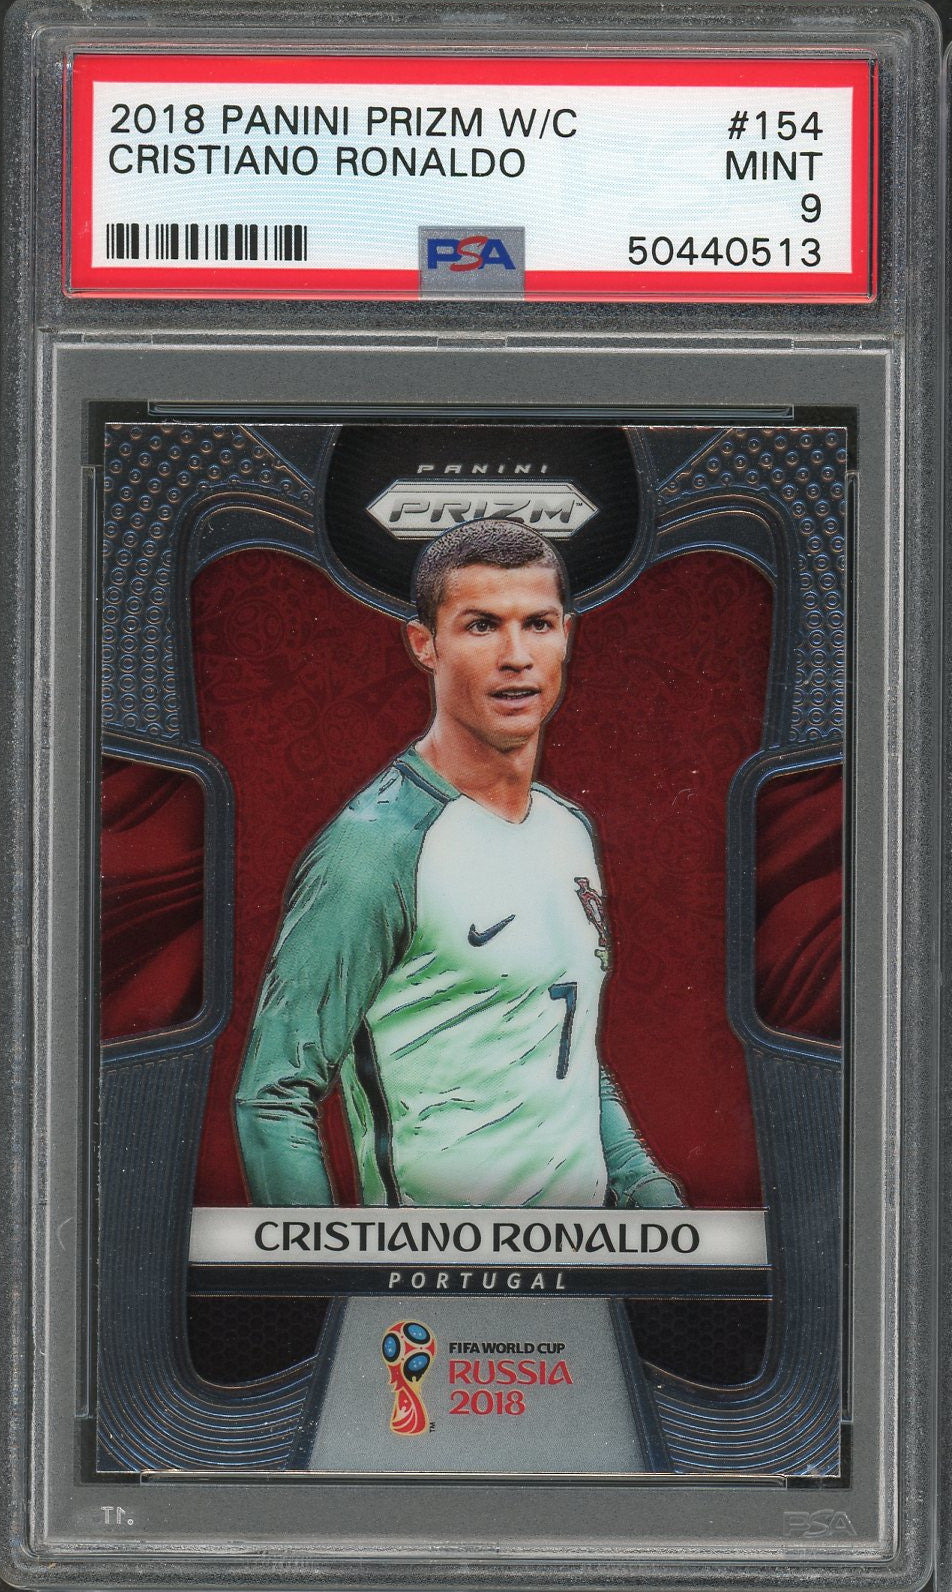 Cristiano Ronaldo Portugal 2018 Panini Prizm World Cup Soccer Card #154 Graded PSA 9 MINT-Powers Sports Memorabilia